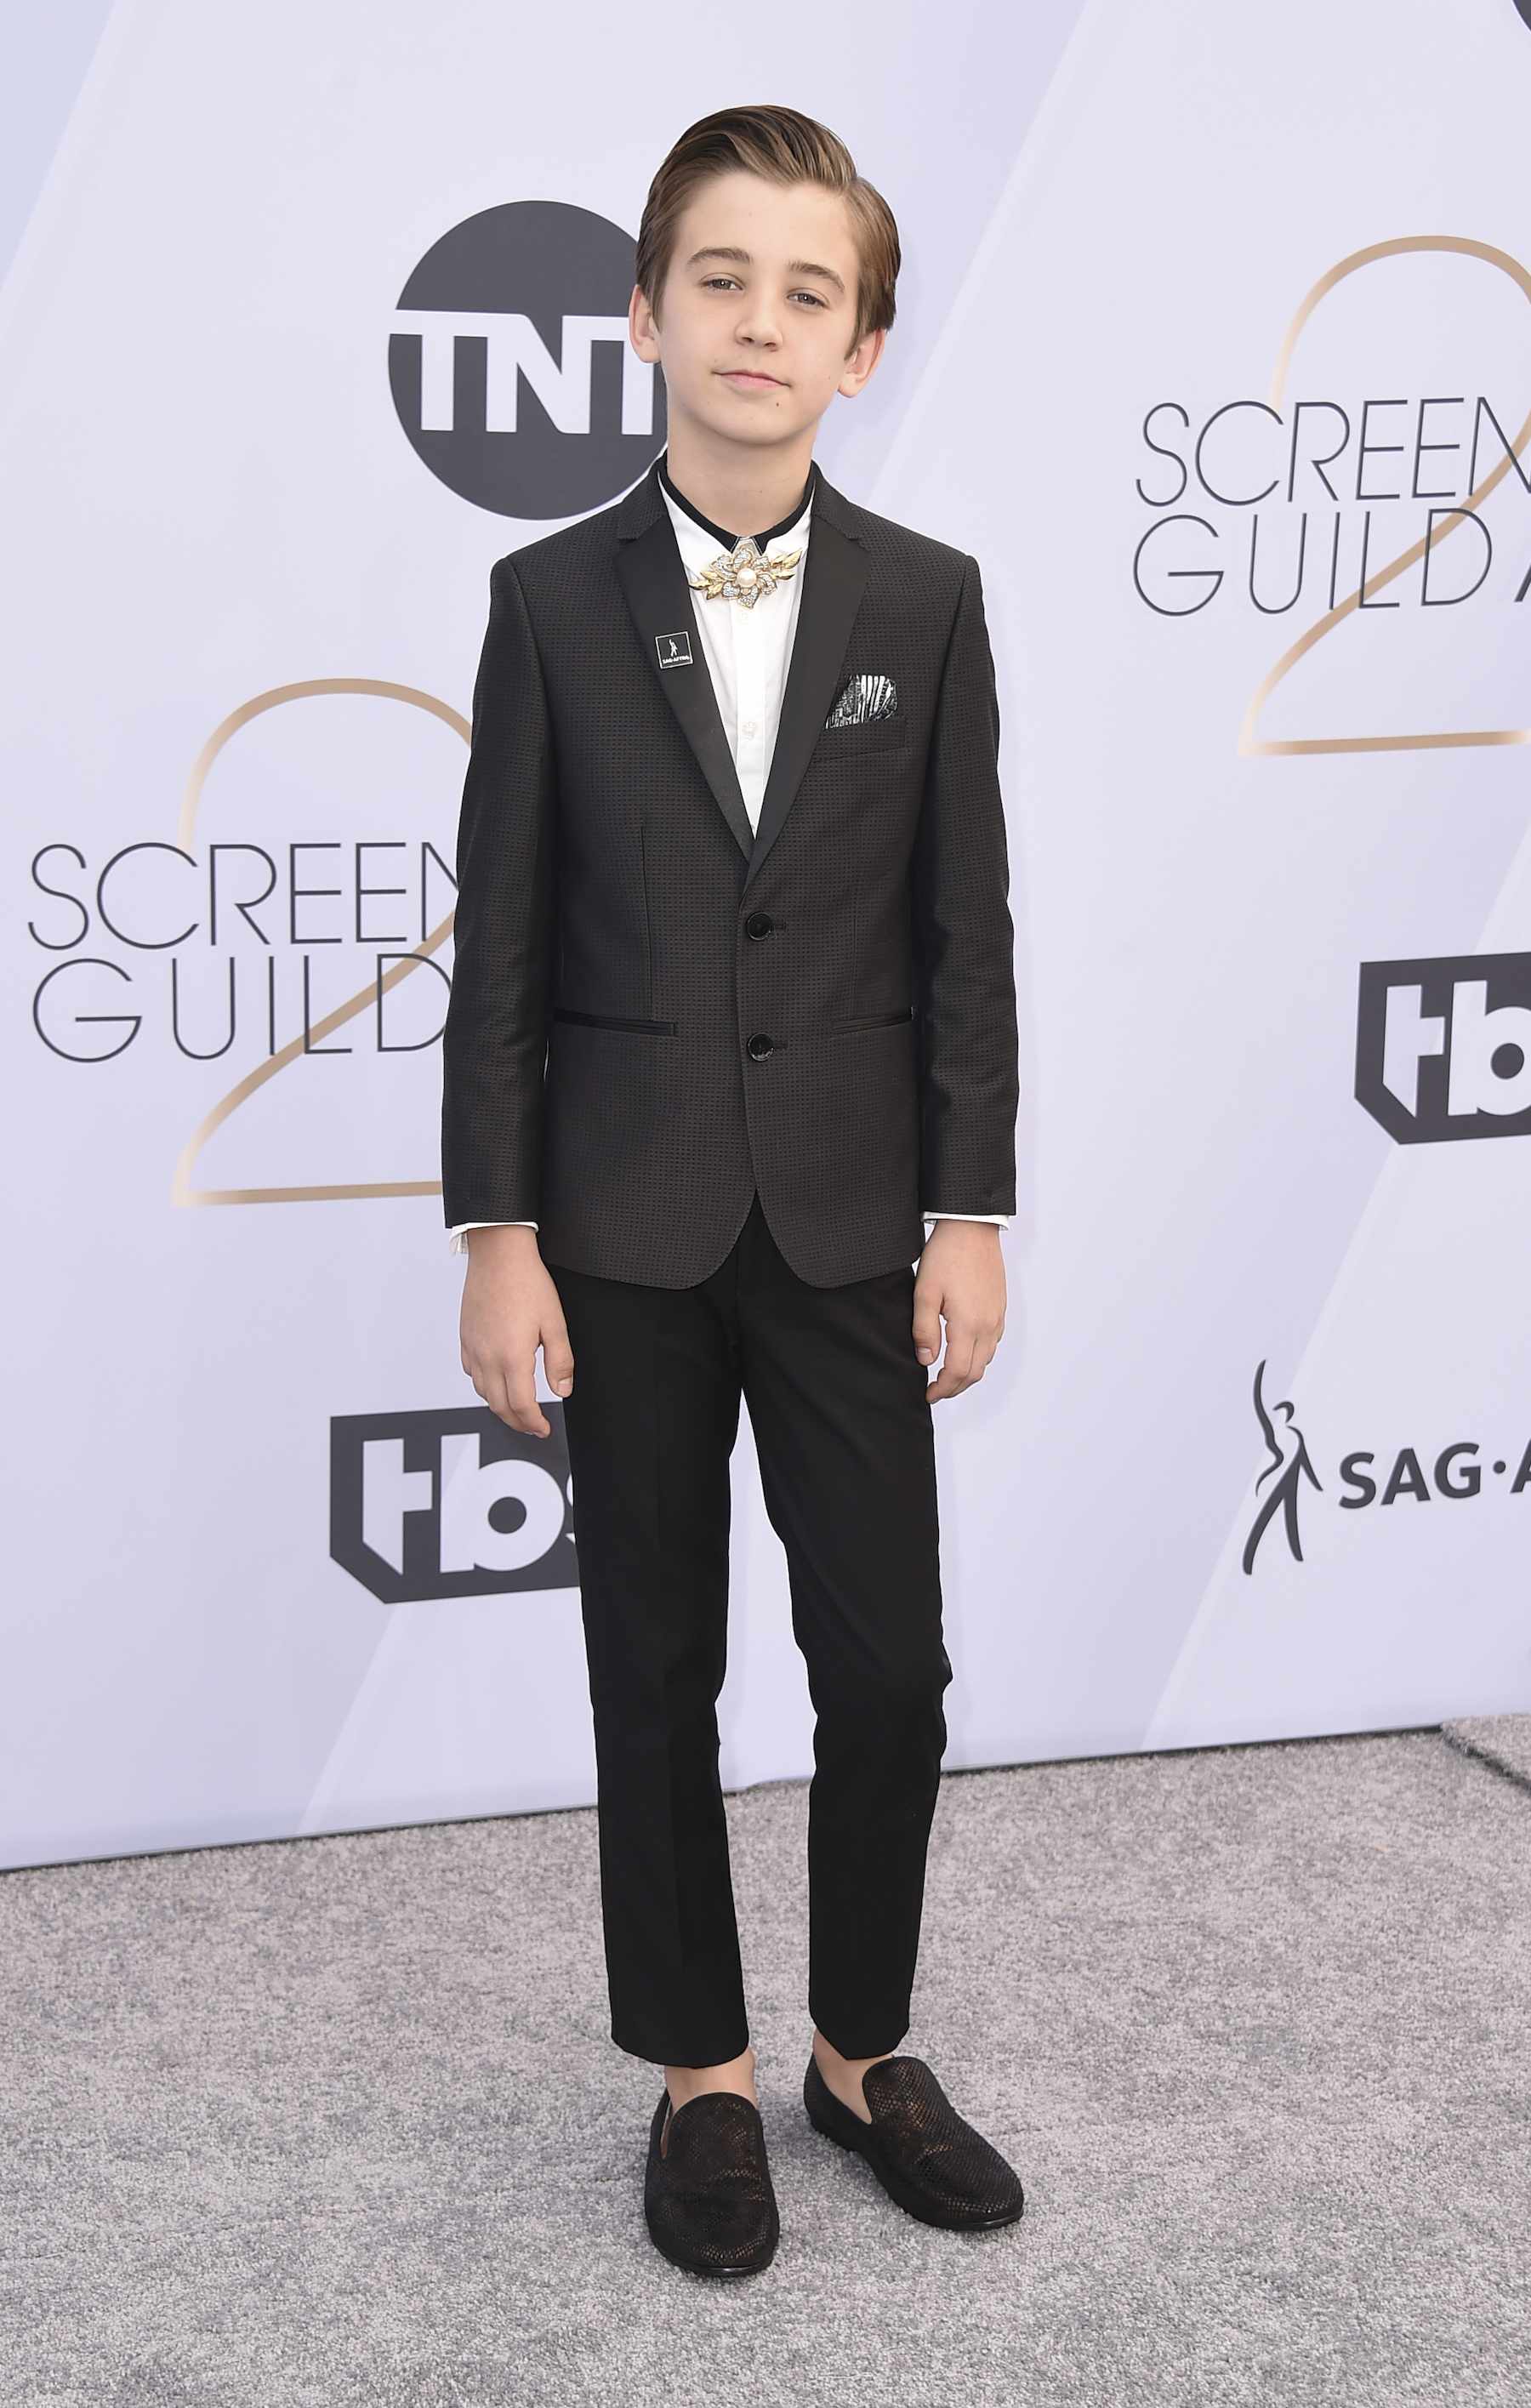 "<div class=""meta image-caption""><div class=""origin-logo origin-image ap""><span>AP</span></div><span class=""caption-text"">Parker Bates arrives at the 25th annual Screen Actors Guild Awards at the Shrine Auditorium & Expo Hall on Sunday, Jan. 27, 2019, in Los Angeles. (Jordan Strauss/Invision/AP)</span></div>"